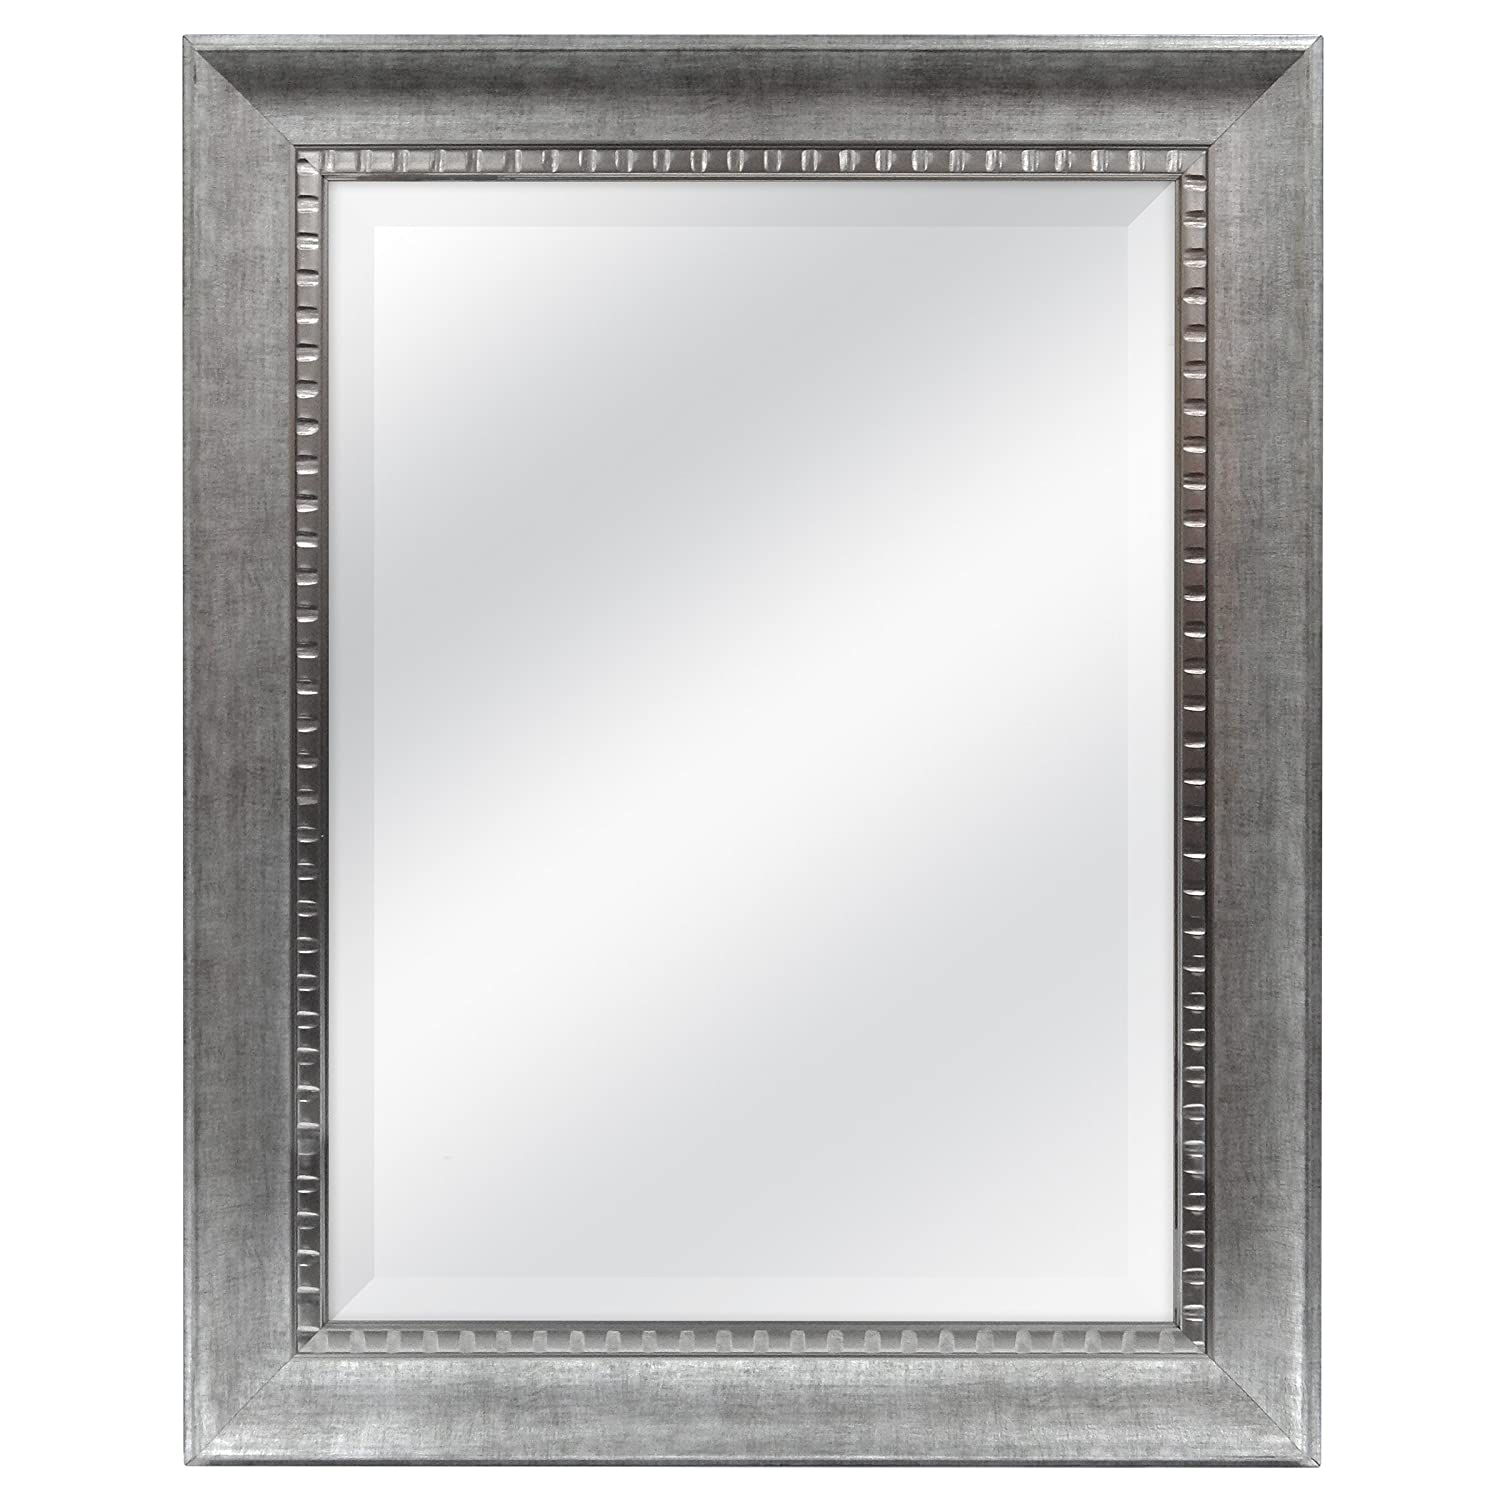 MCS 18x24 Sloped Mirror with Dental Molding Detail Outside Dimension is 23.5x29.5, Silver Finish MCS Industries 20563